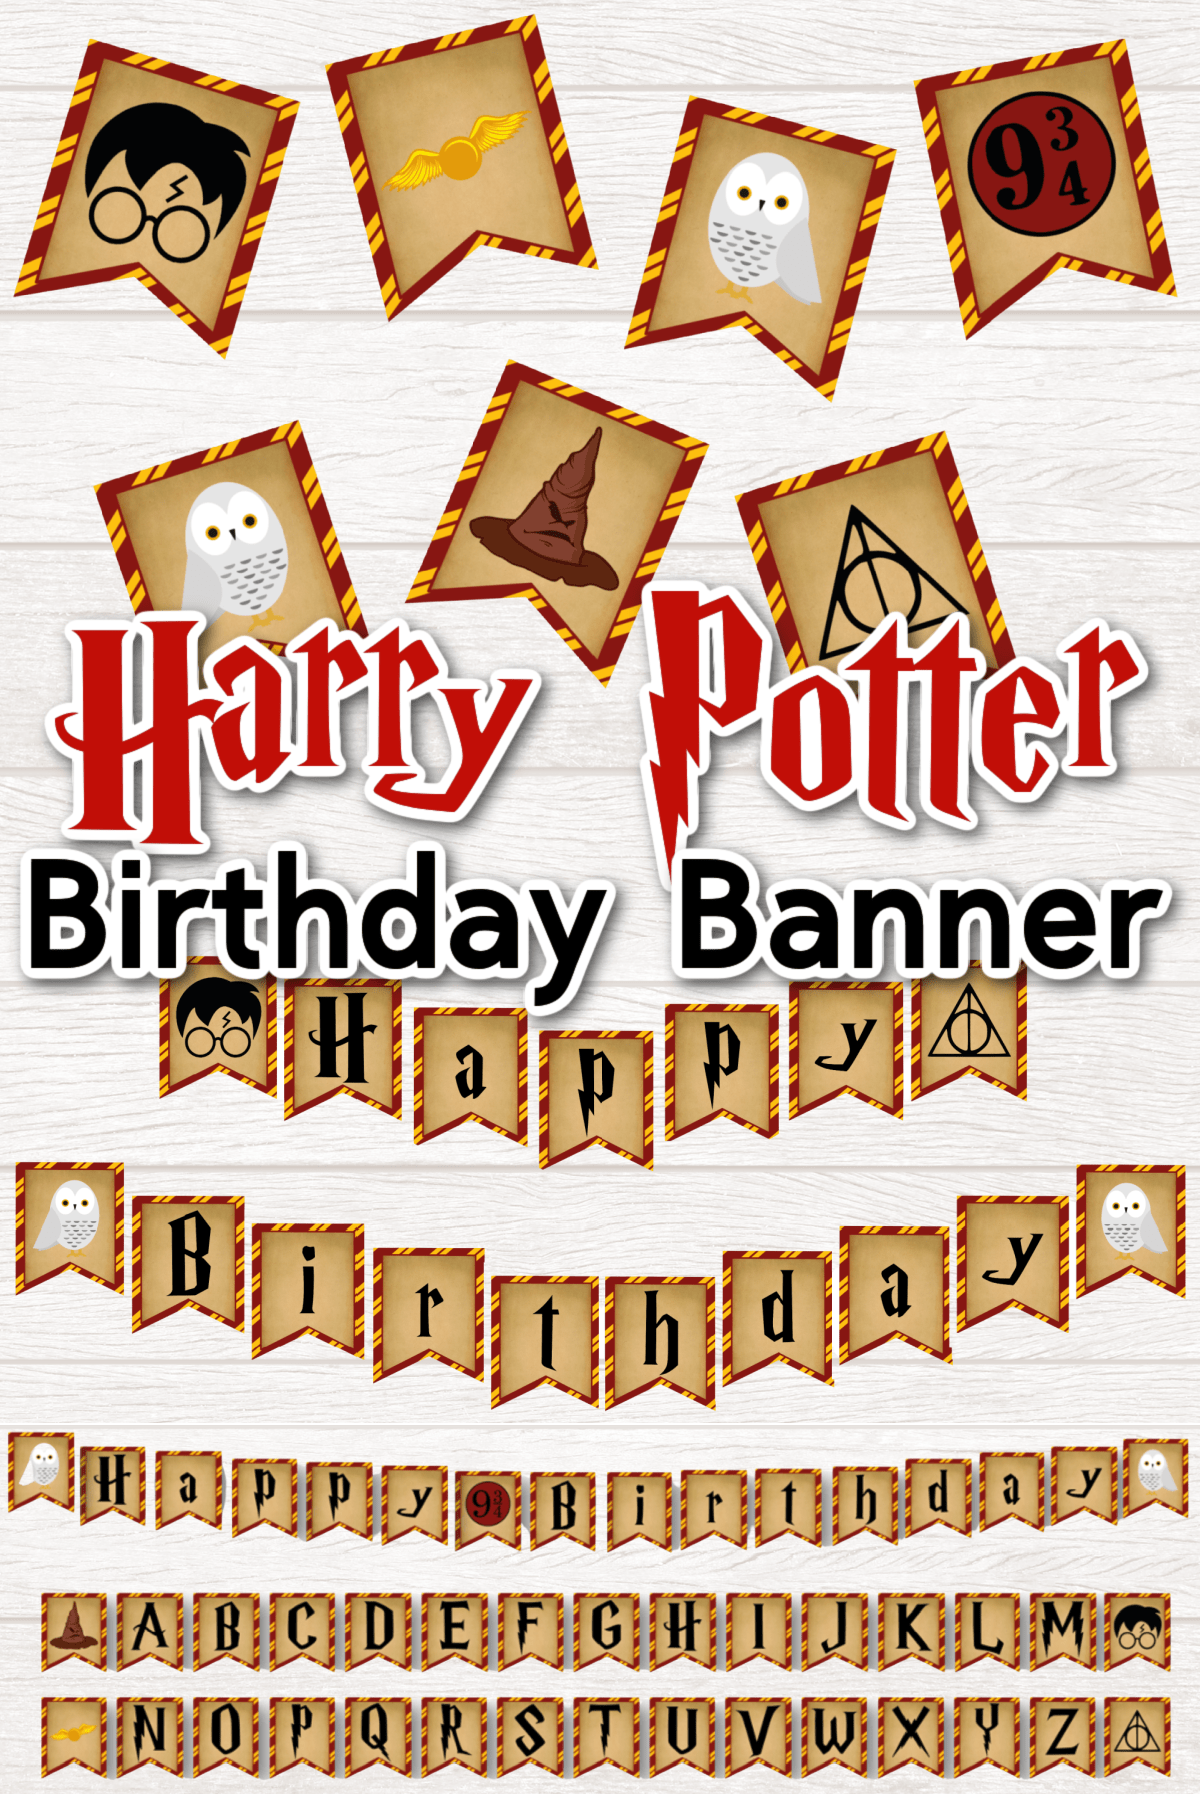 Harry Potter Birthday Banner With letters and images